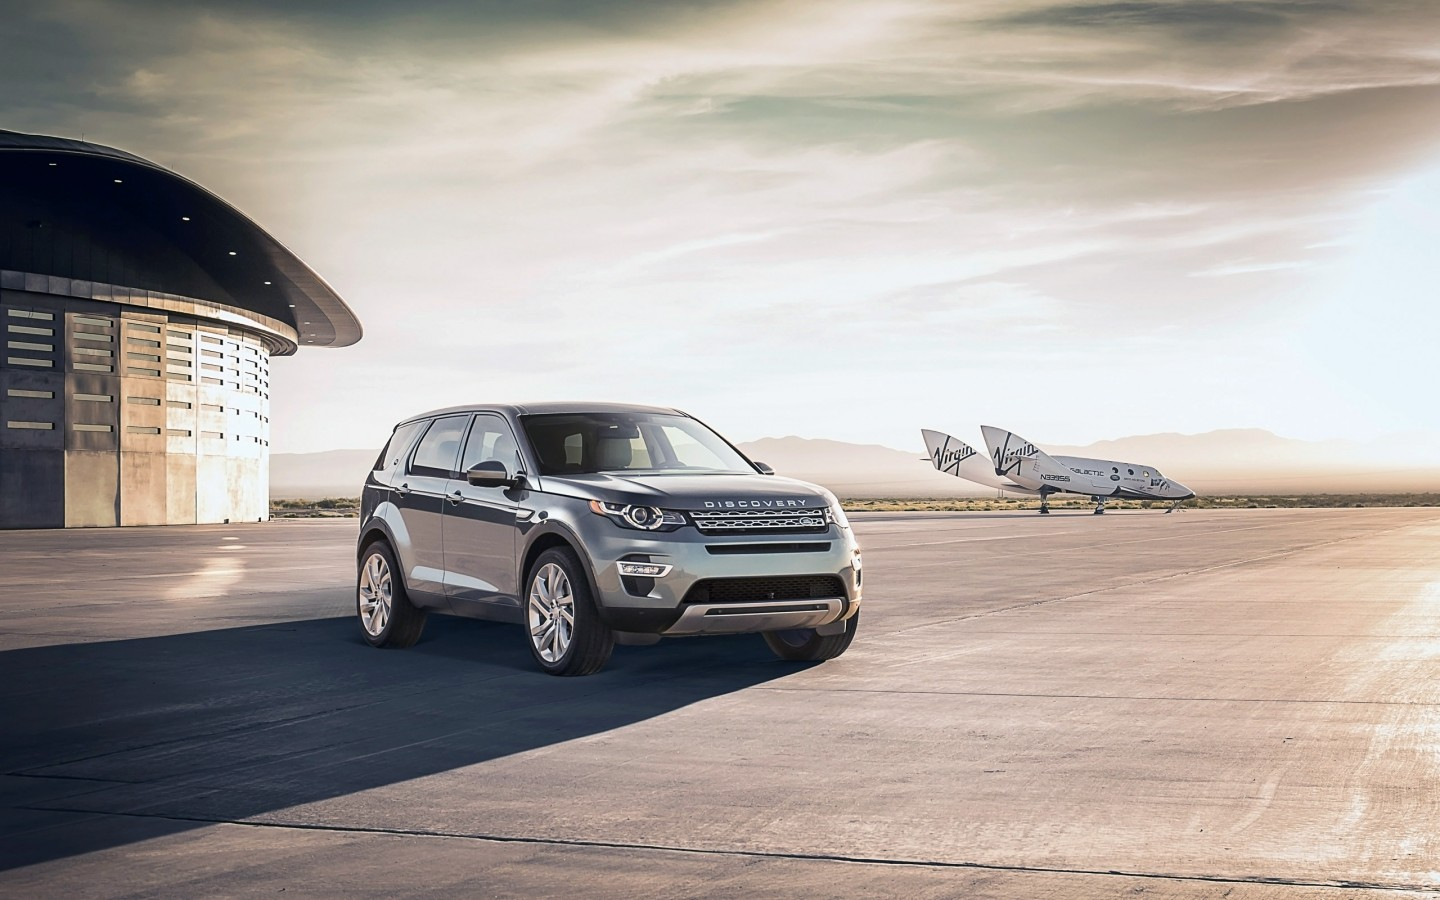 Discovery Sport Wallpaper Android: 2015 Land Rover Discovery Sport 4 Wallpaper